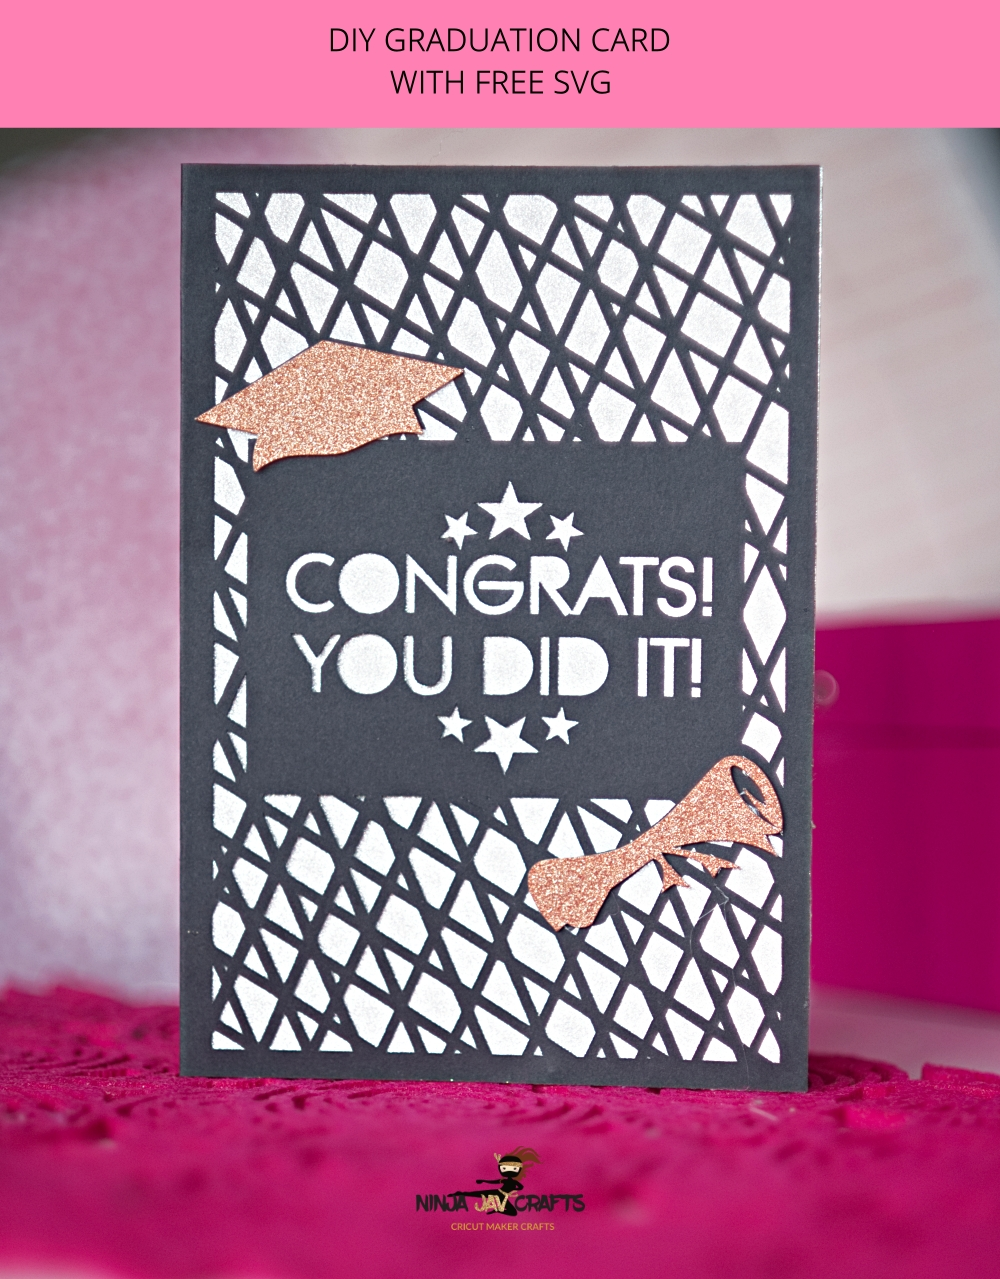 Click for FREE Graduation Card SVG File + Tutorial for a special Graduation themed card with a gift card pocket.